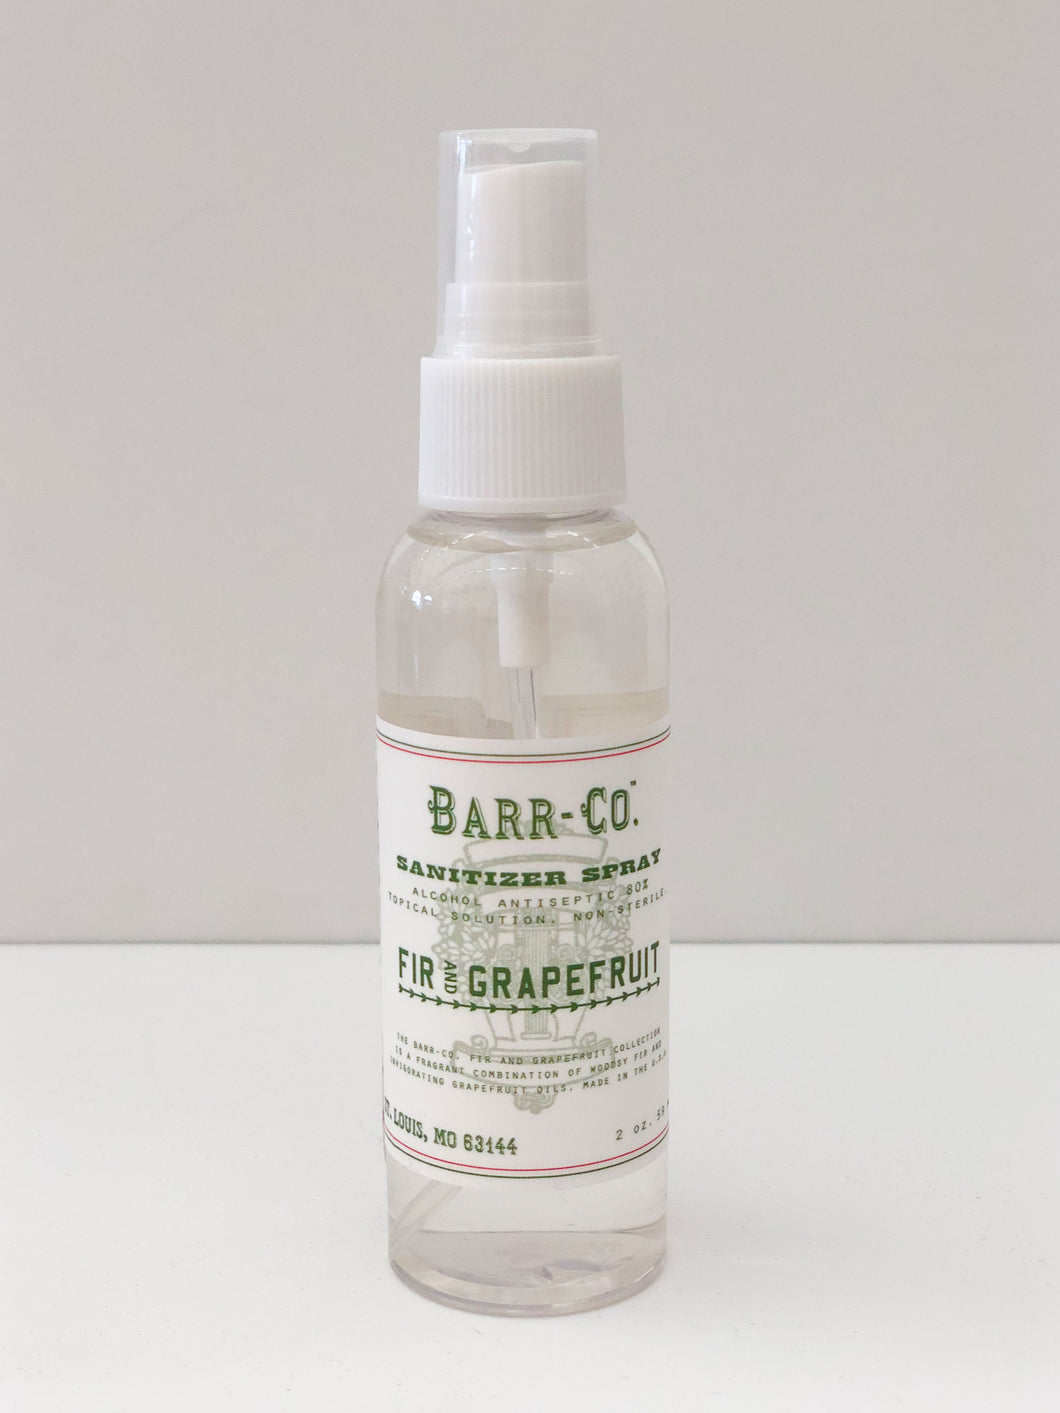 2 oz Sanitizer - Fir & Grapefruit